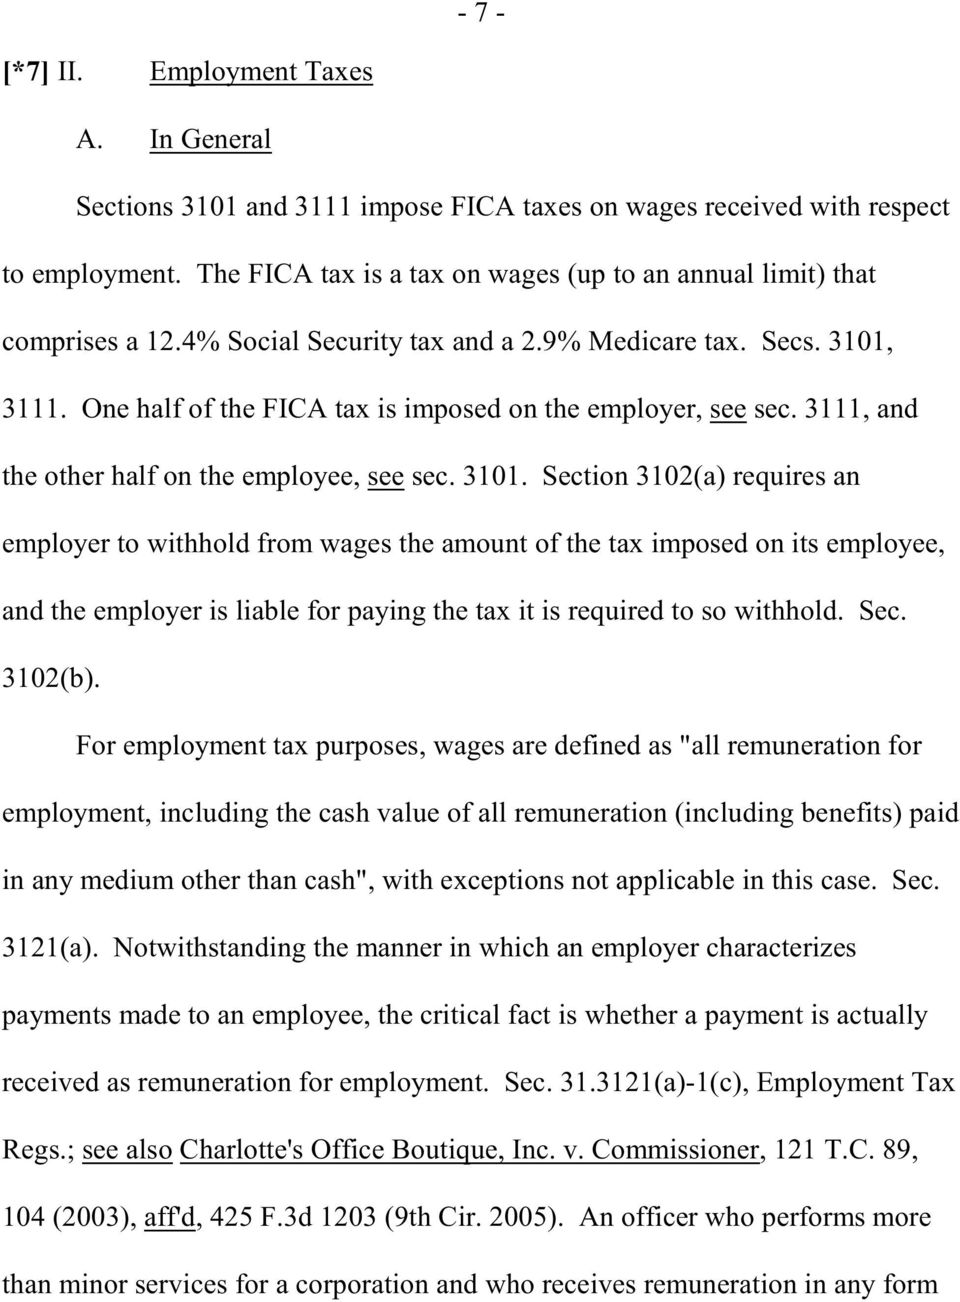 One half of the FICA tax is imposed on the employer, see sec. 3111, and the other half on the employee, see sec. 3101.